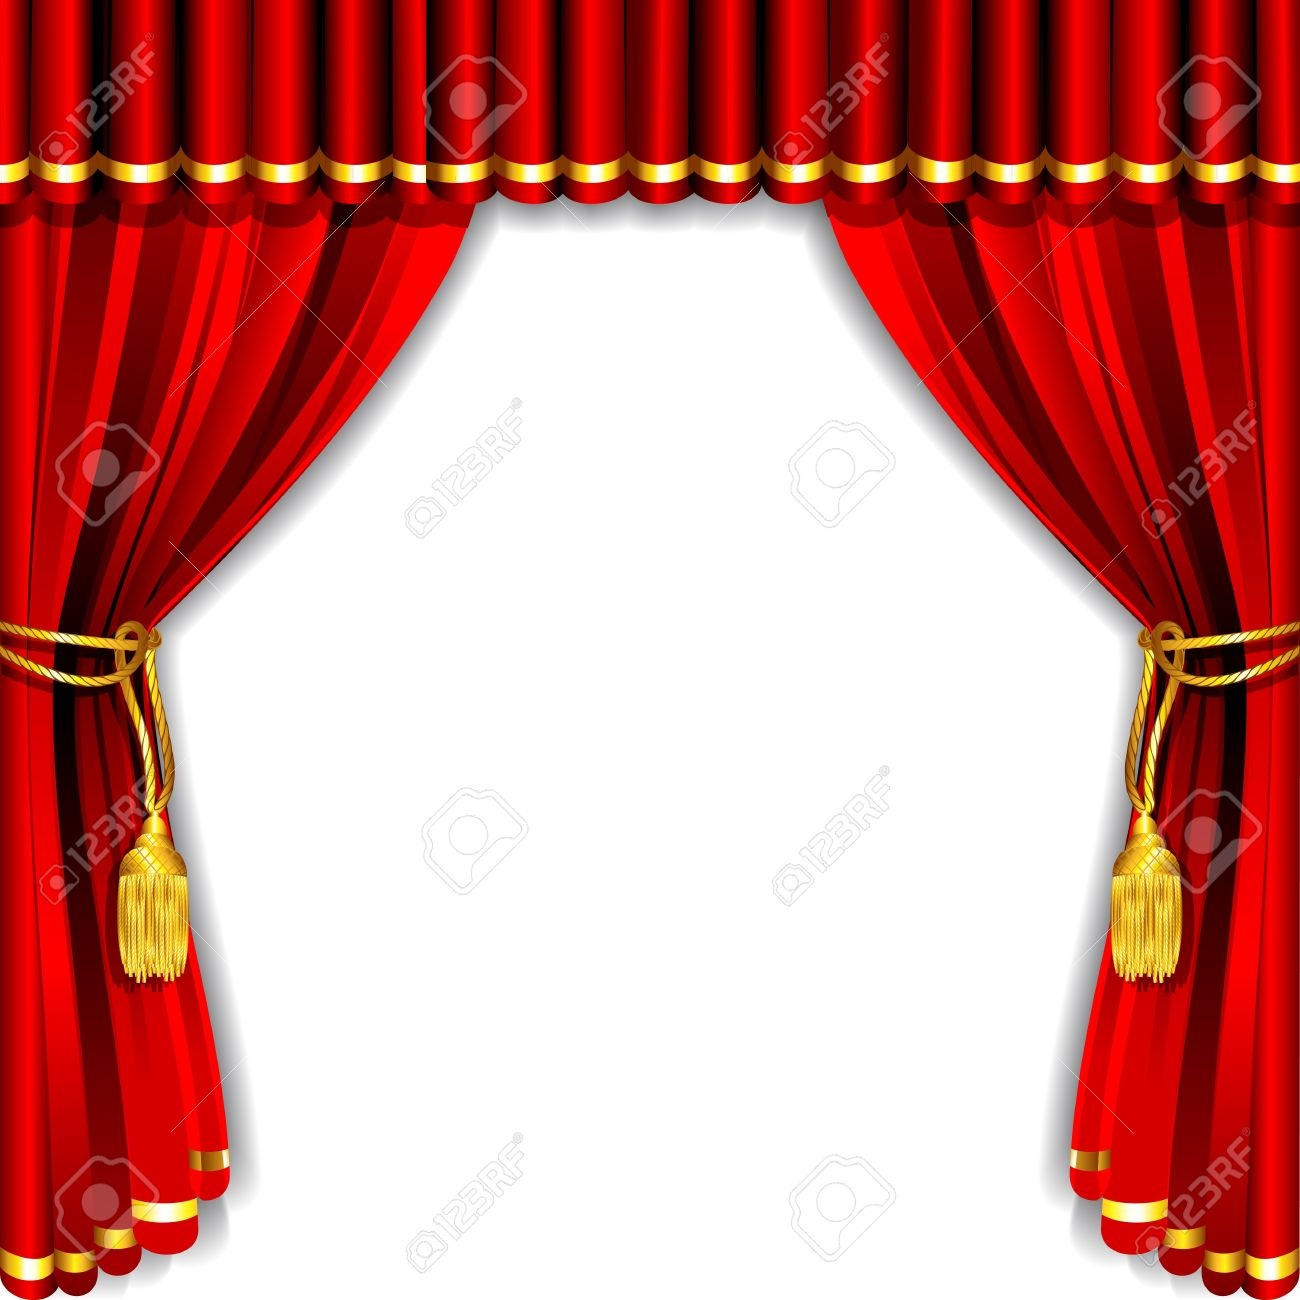 Illustration Of Silk Stage Curtain With White Backdrop Stock Vector